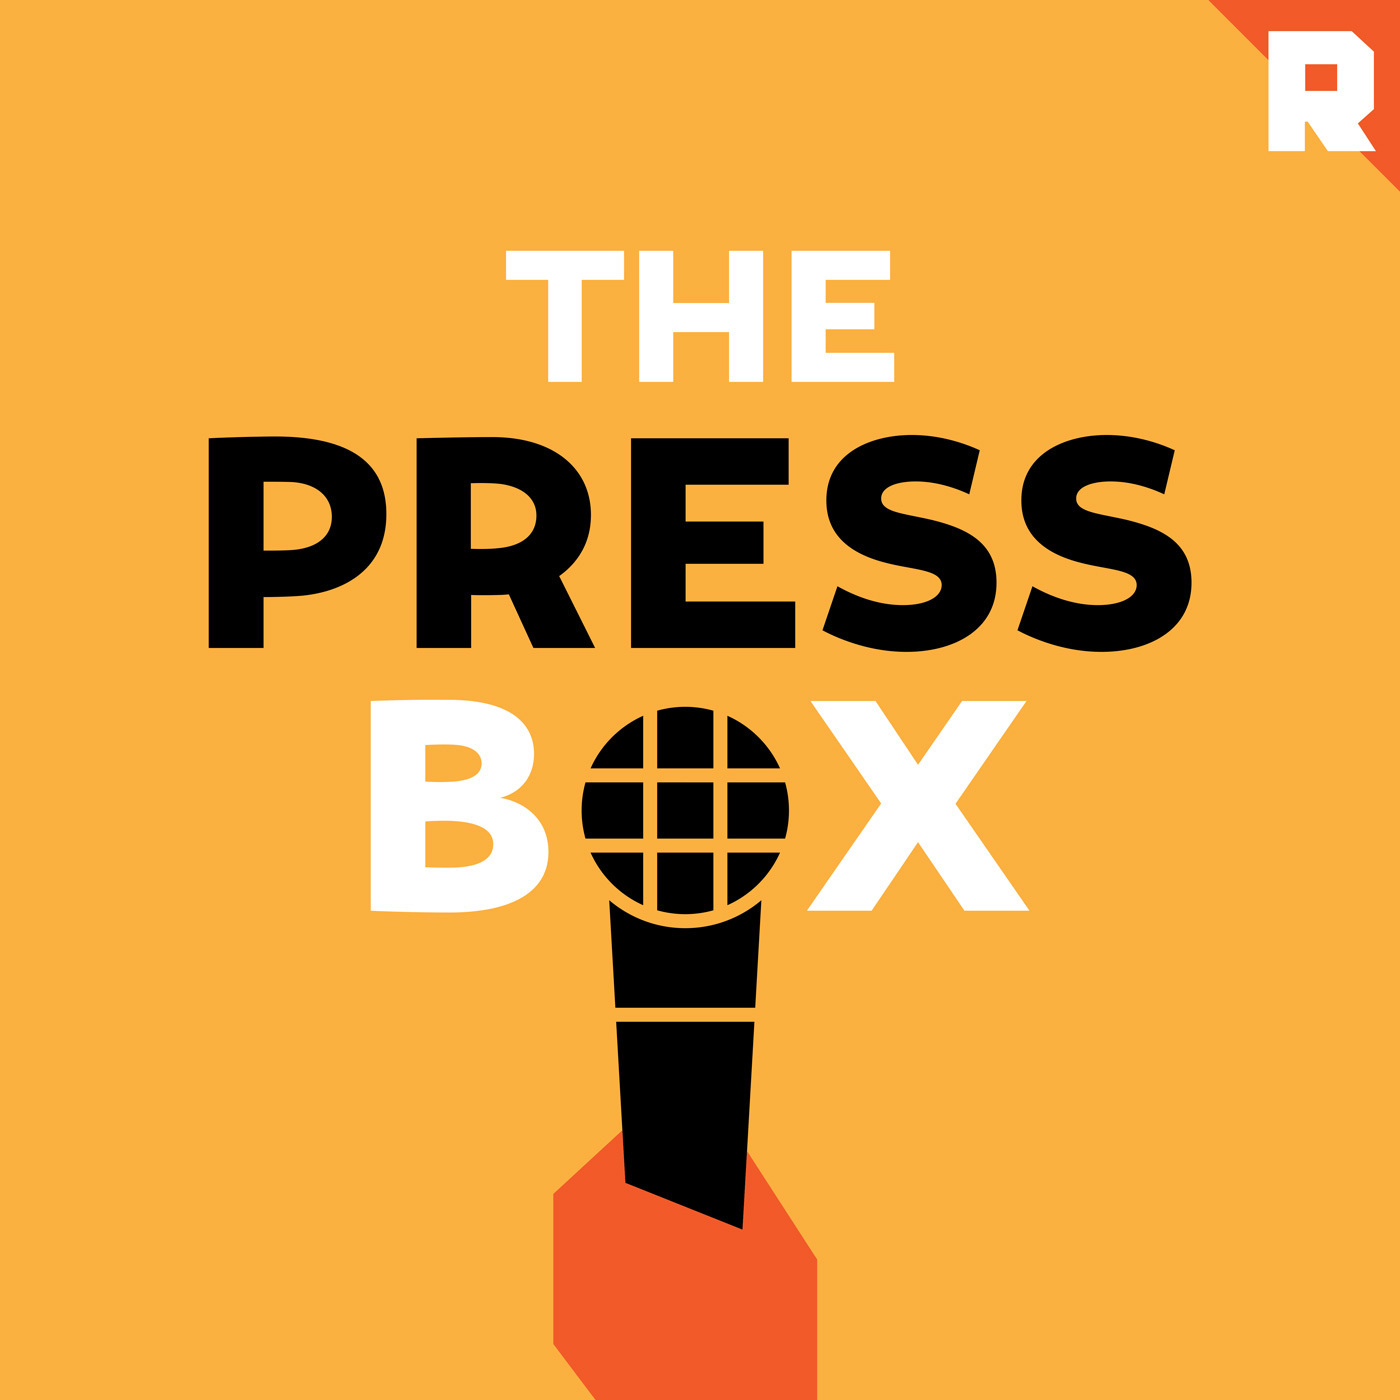 The Press Box podcast logo from The Ringer